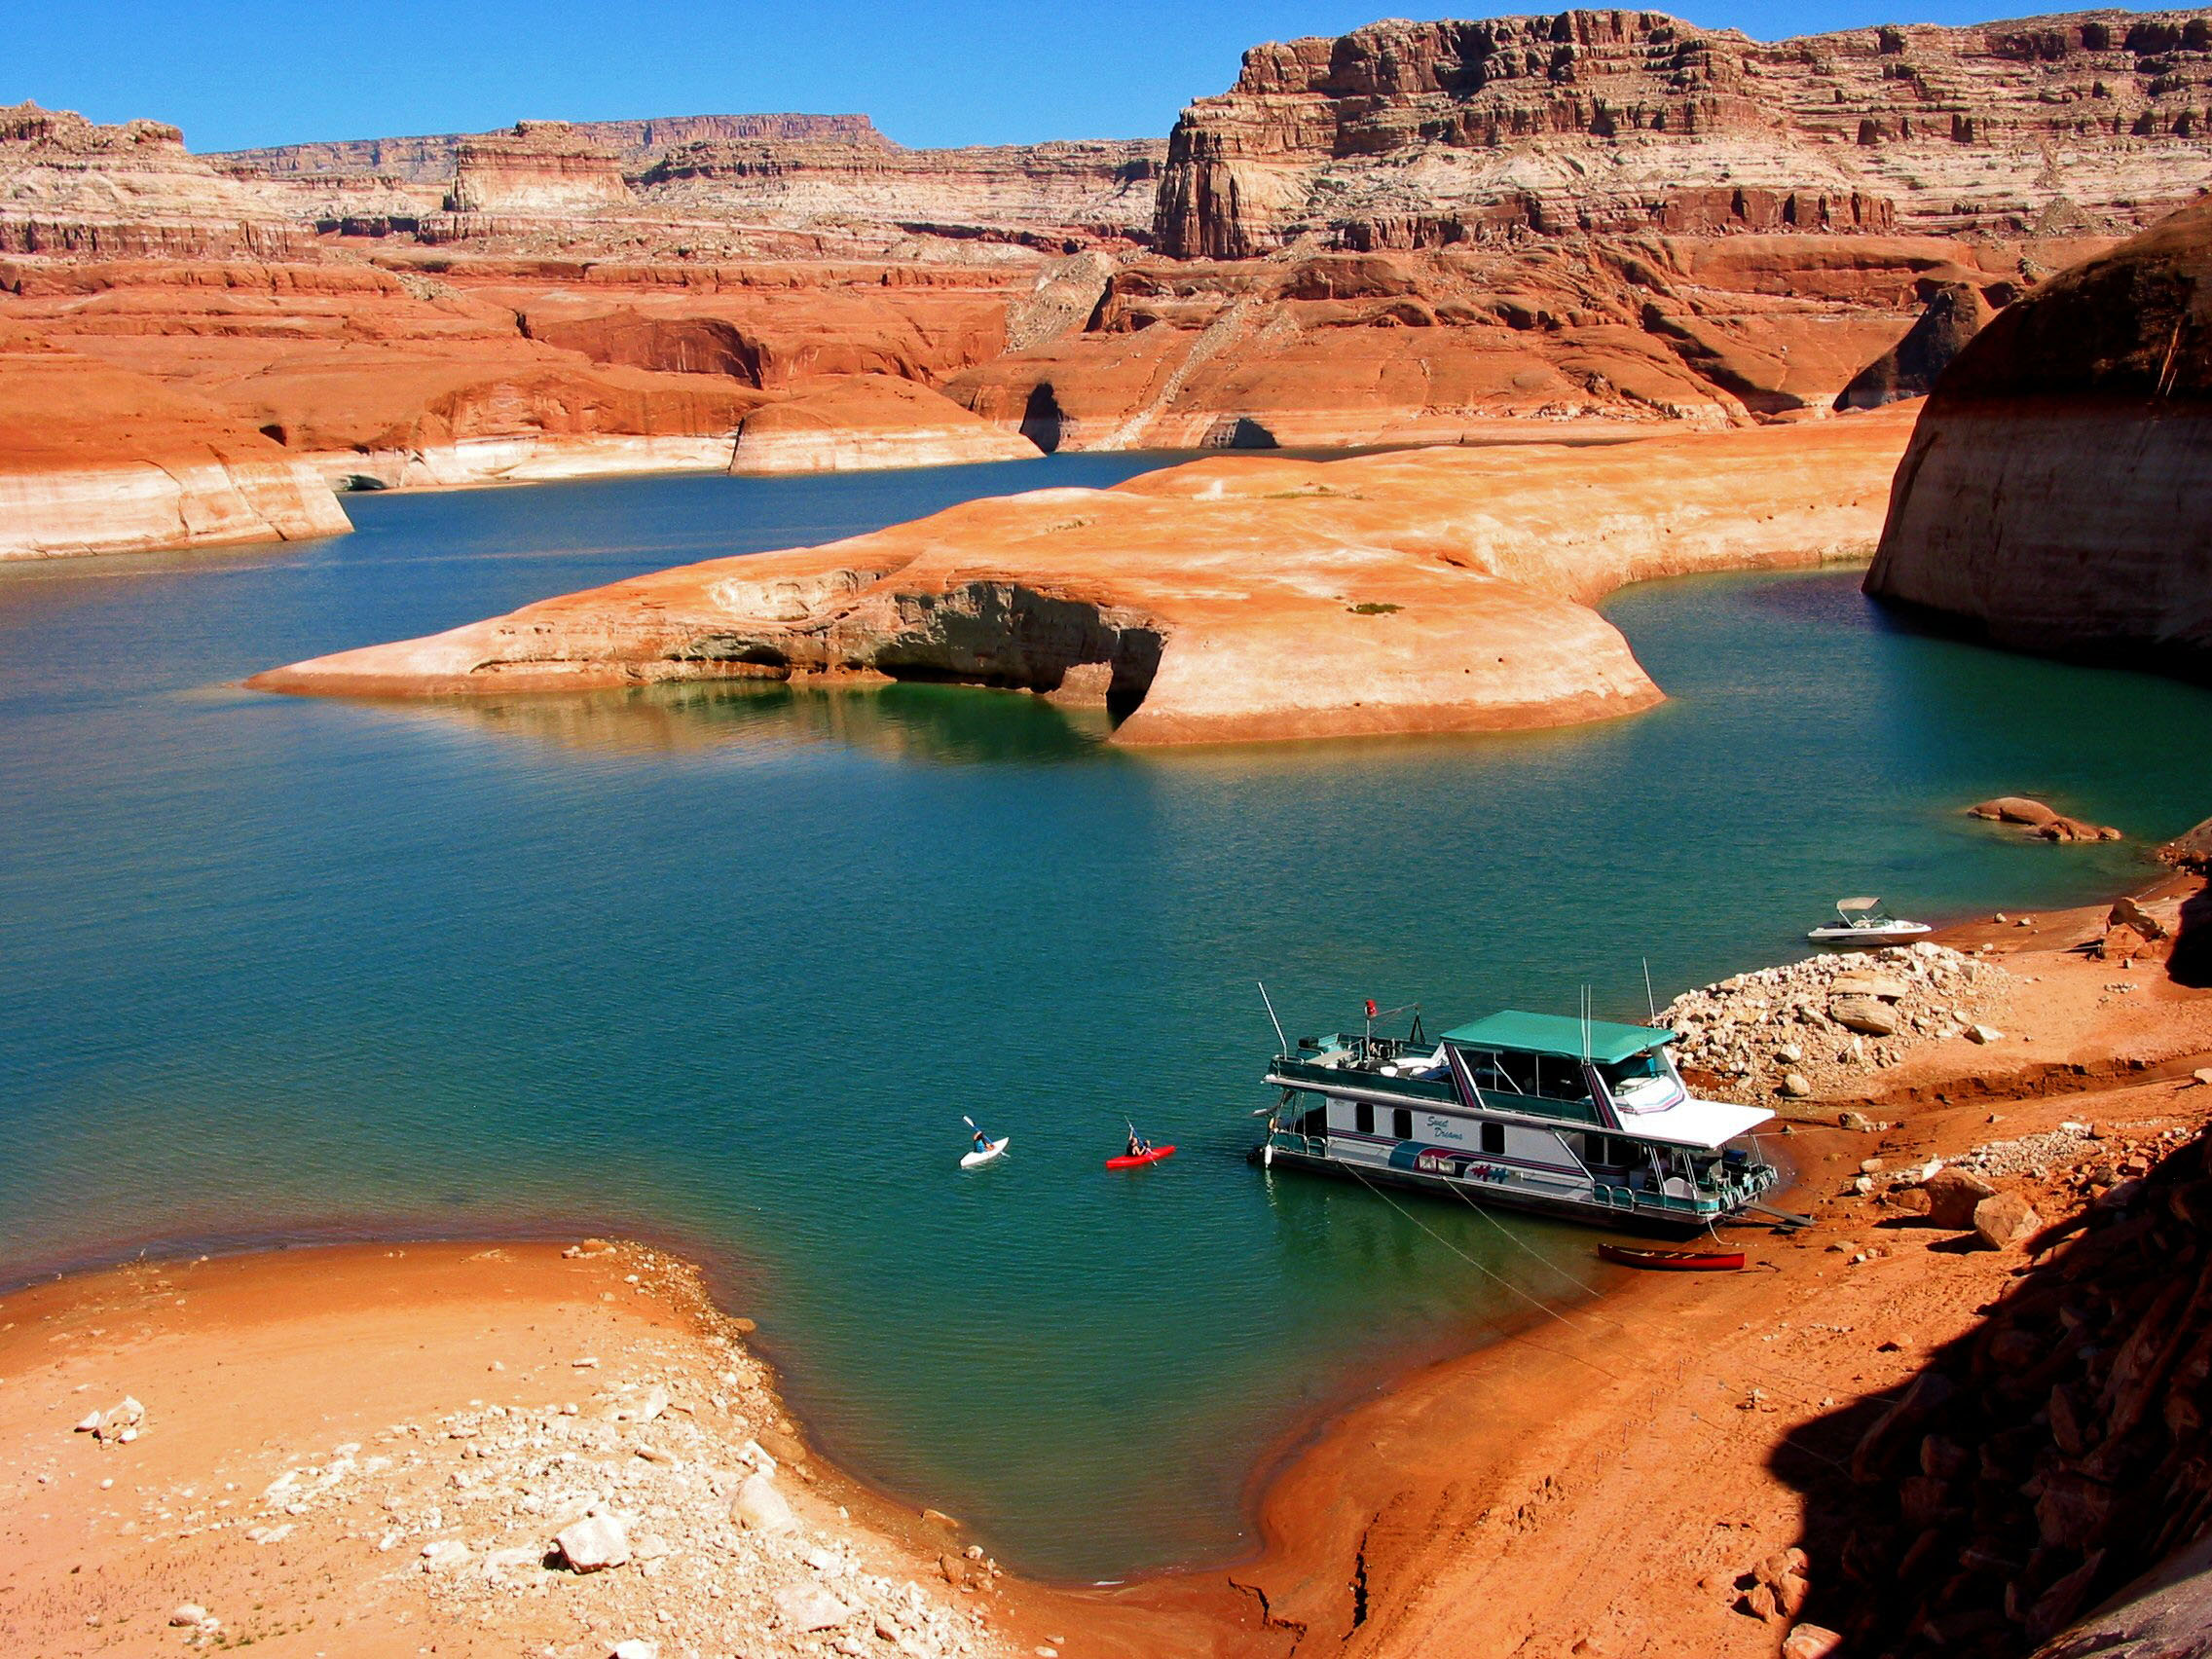 lake powell online hookup & dating I am taking my family to lake powell june 12-24 this will be the first time we have gone for 2 weeks and we are really excited this will be our first trip with our new-to-us 1989 2100sx.